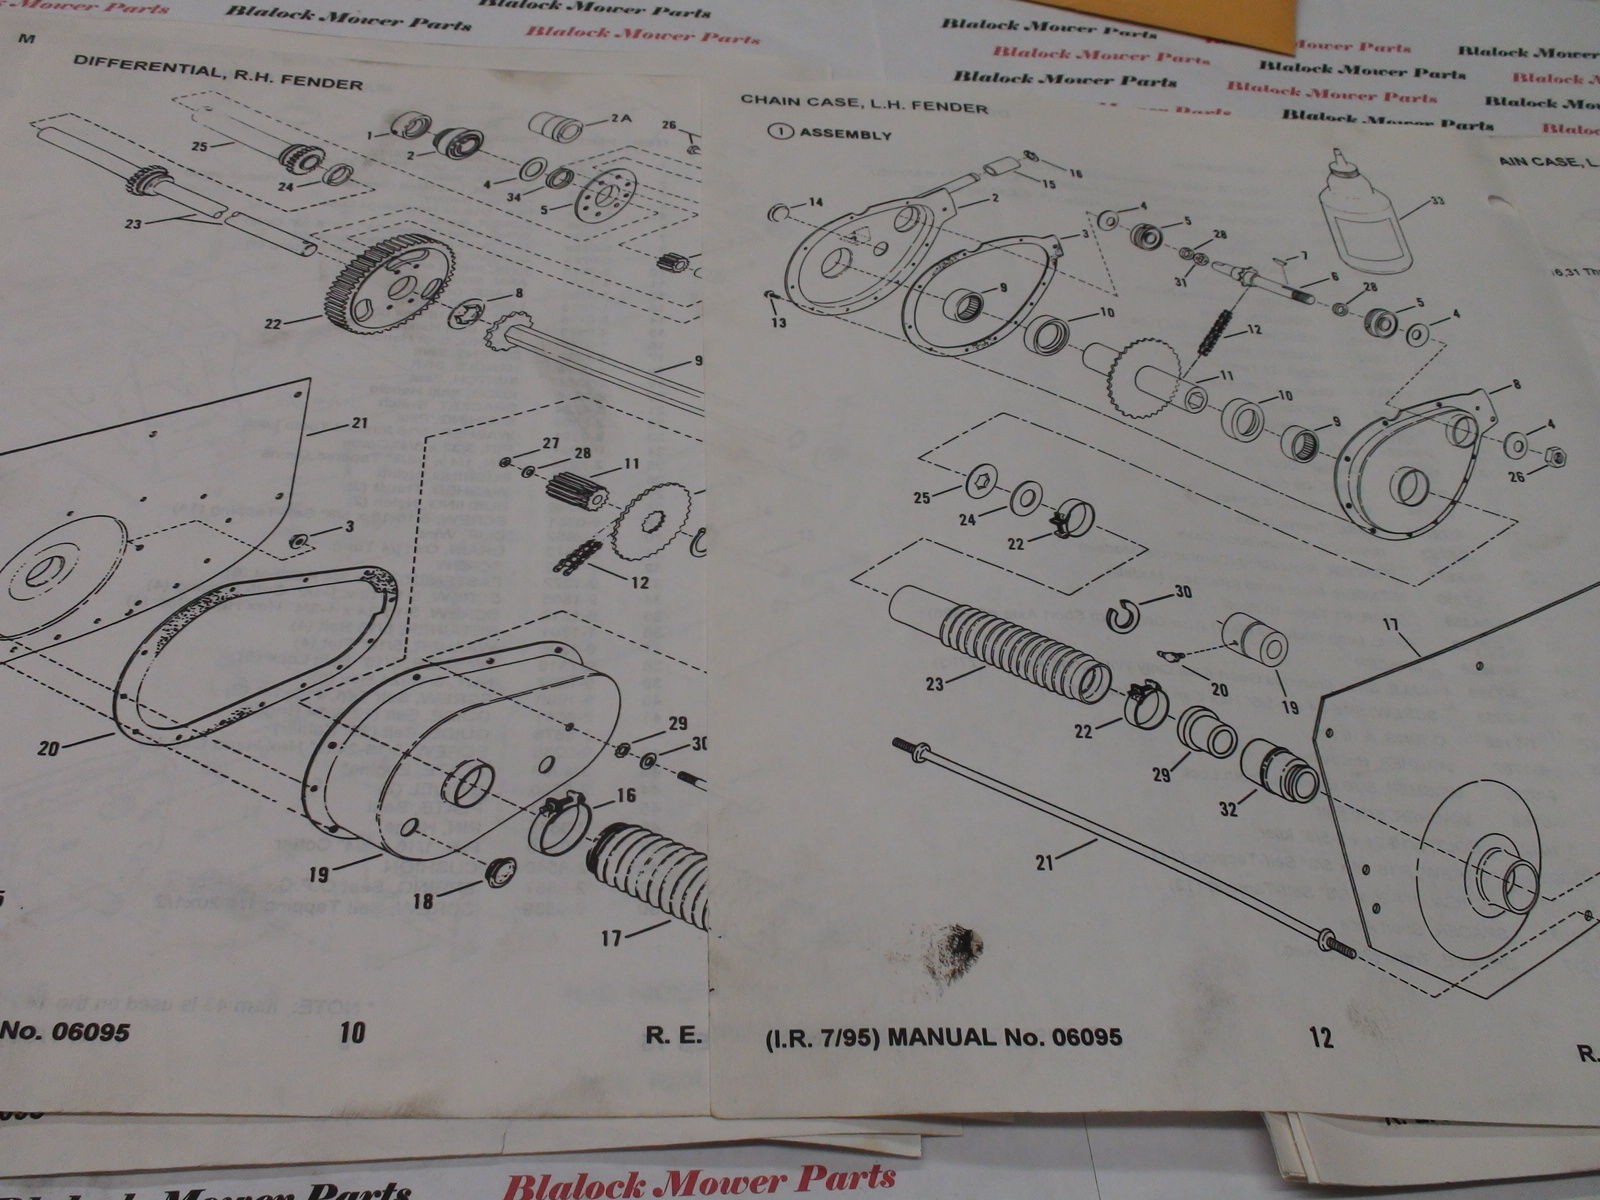 Honda Gx240 Parts Diagram Snapper Series 15 Rear Engine